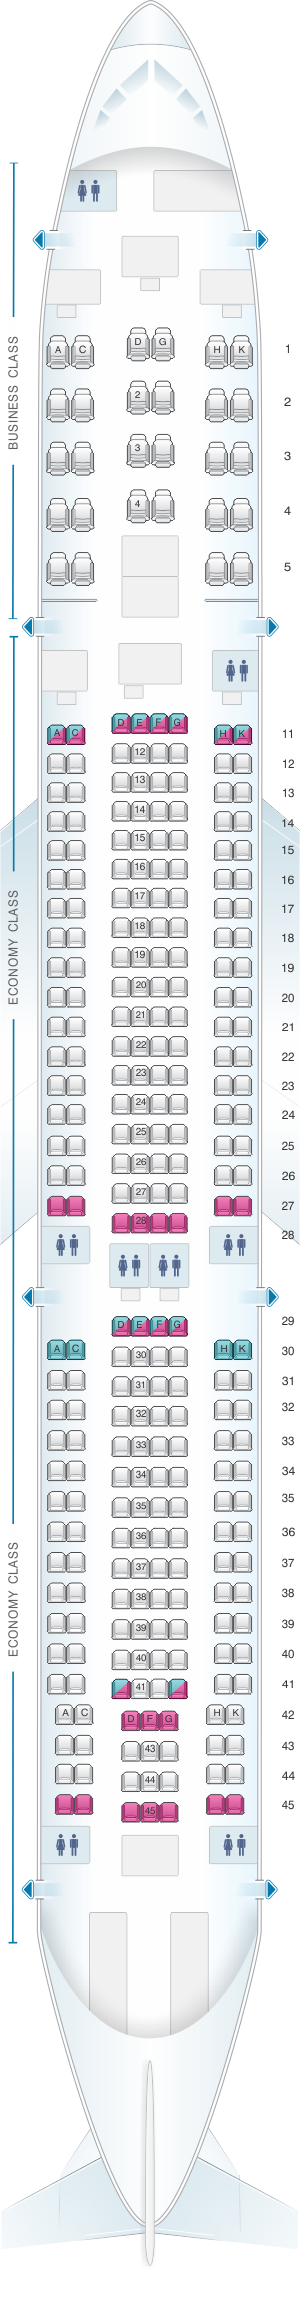 Seat map for Aeroflot Russian Airlines Airbus A330 300 Config.2